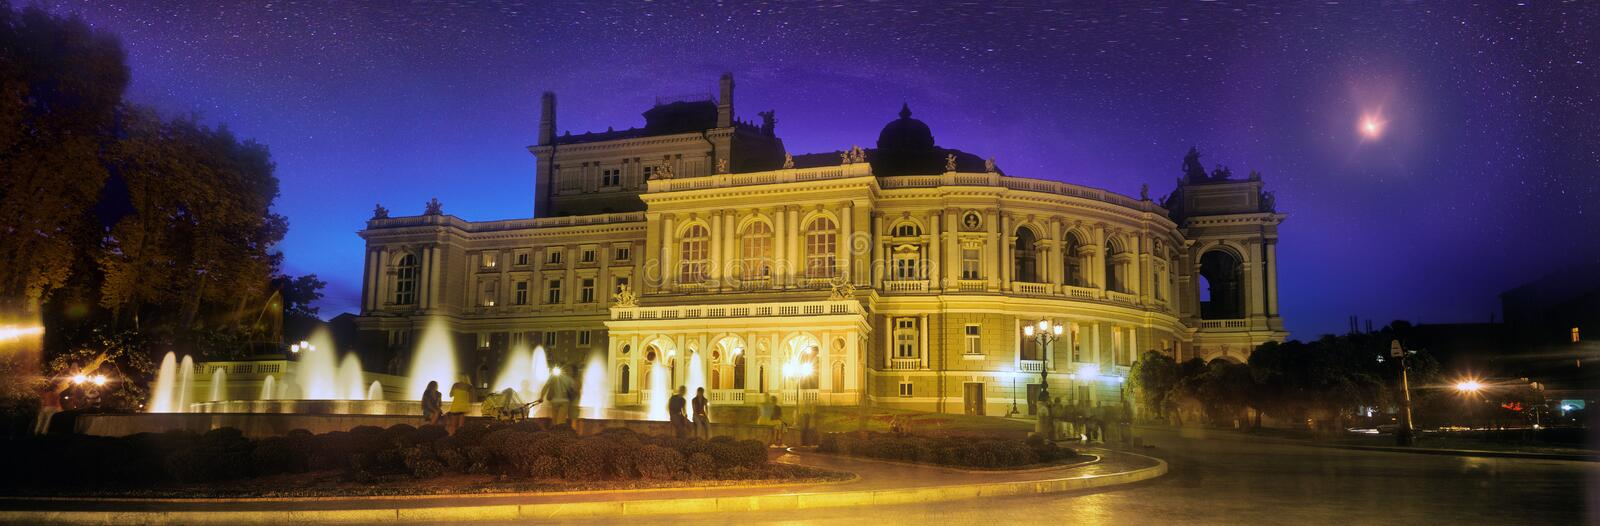 Odessa National Academic Theater de Opera e do bailado imagem de stock